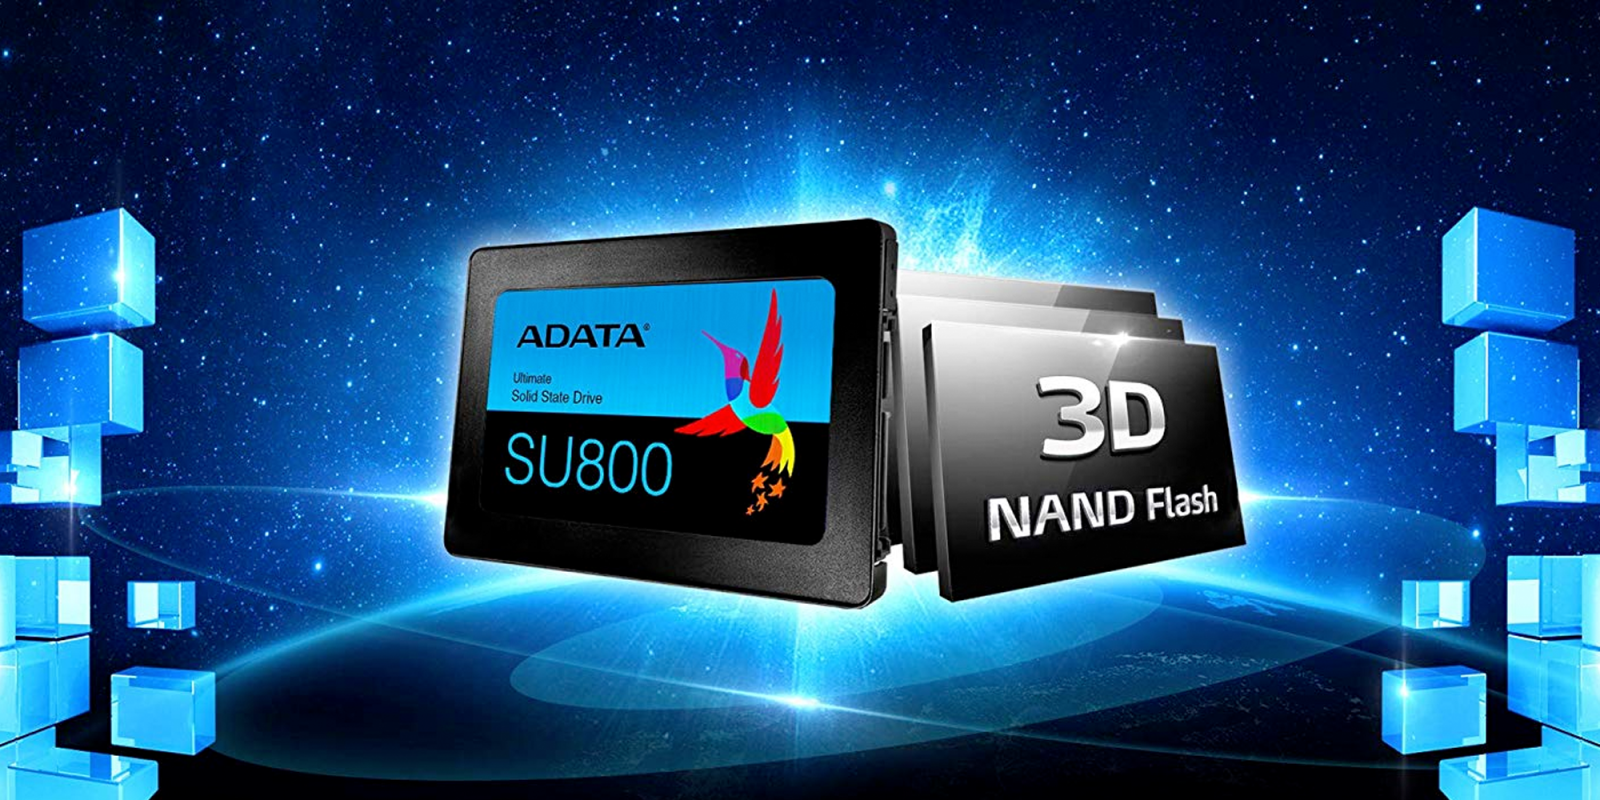 Boost the speed, capacity, & reliability of a console, PC, or Mac w/ ADATA's 2TB SSD for $200, more